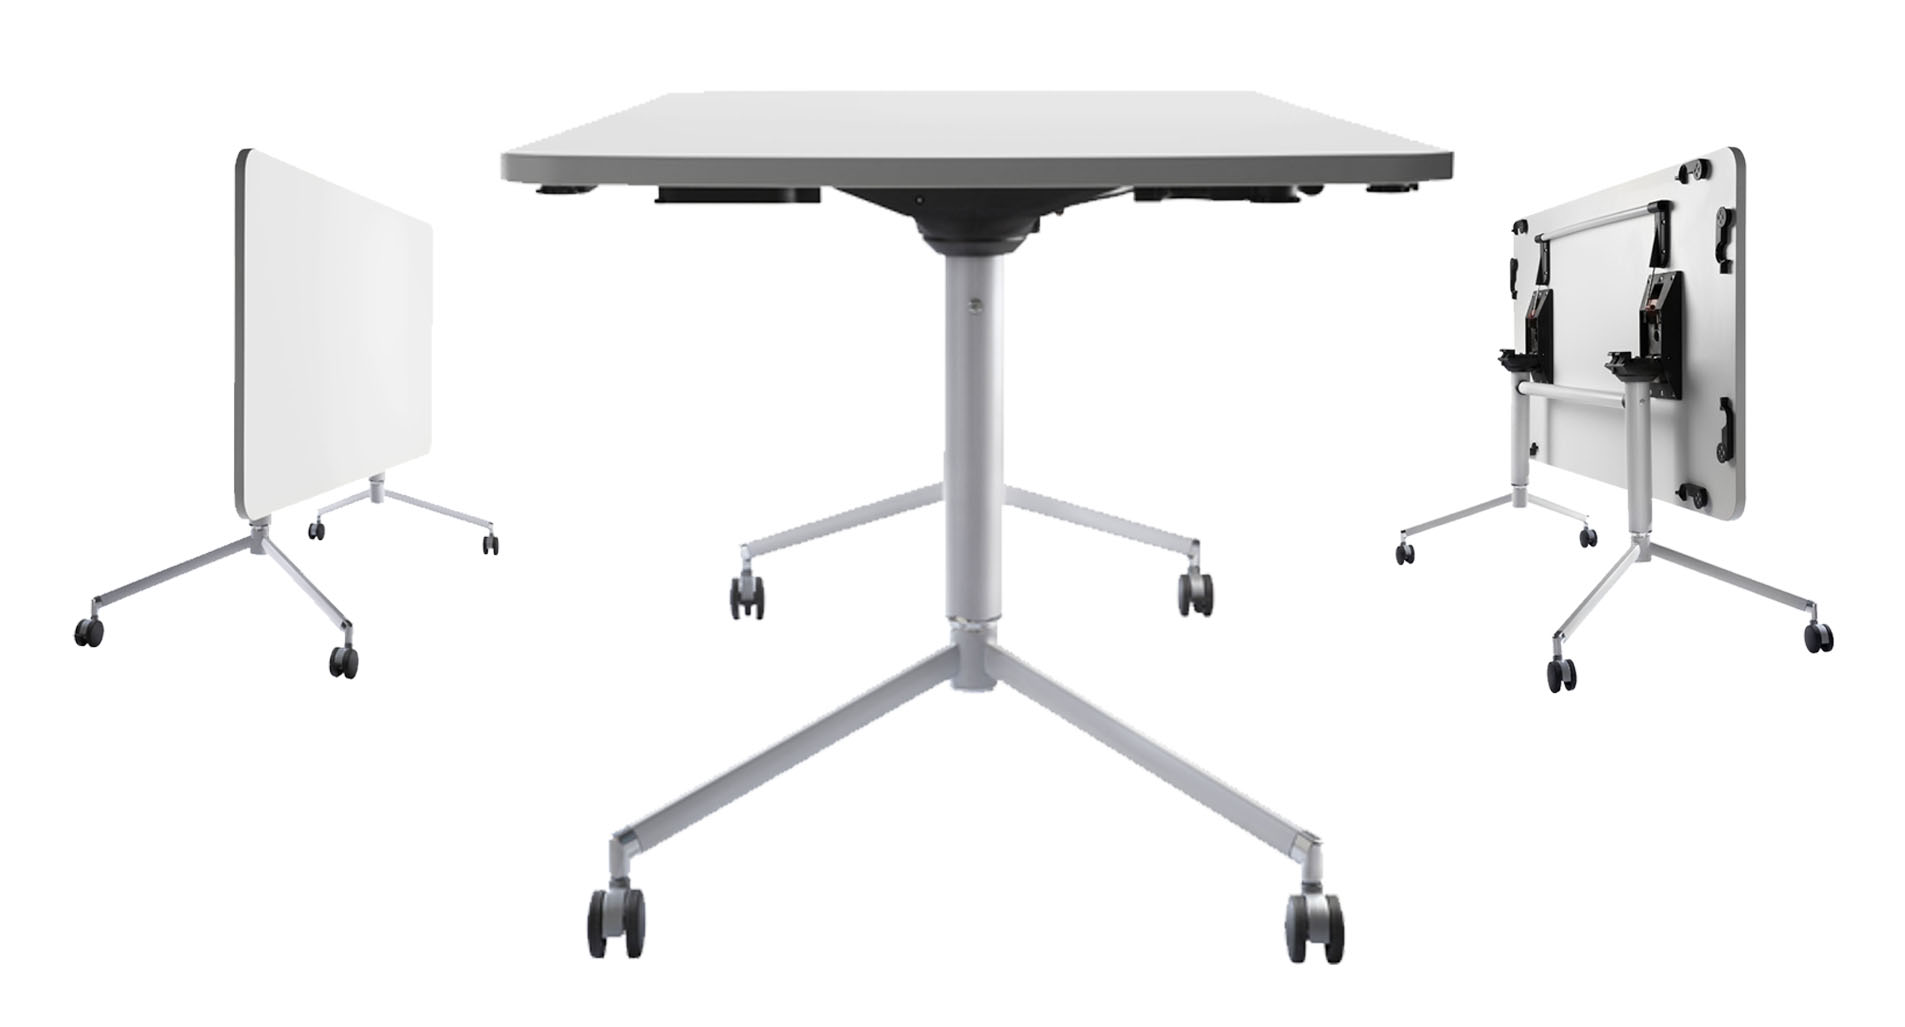 New Folding Table Solution From Connections